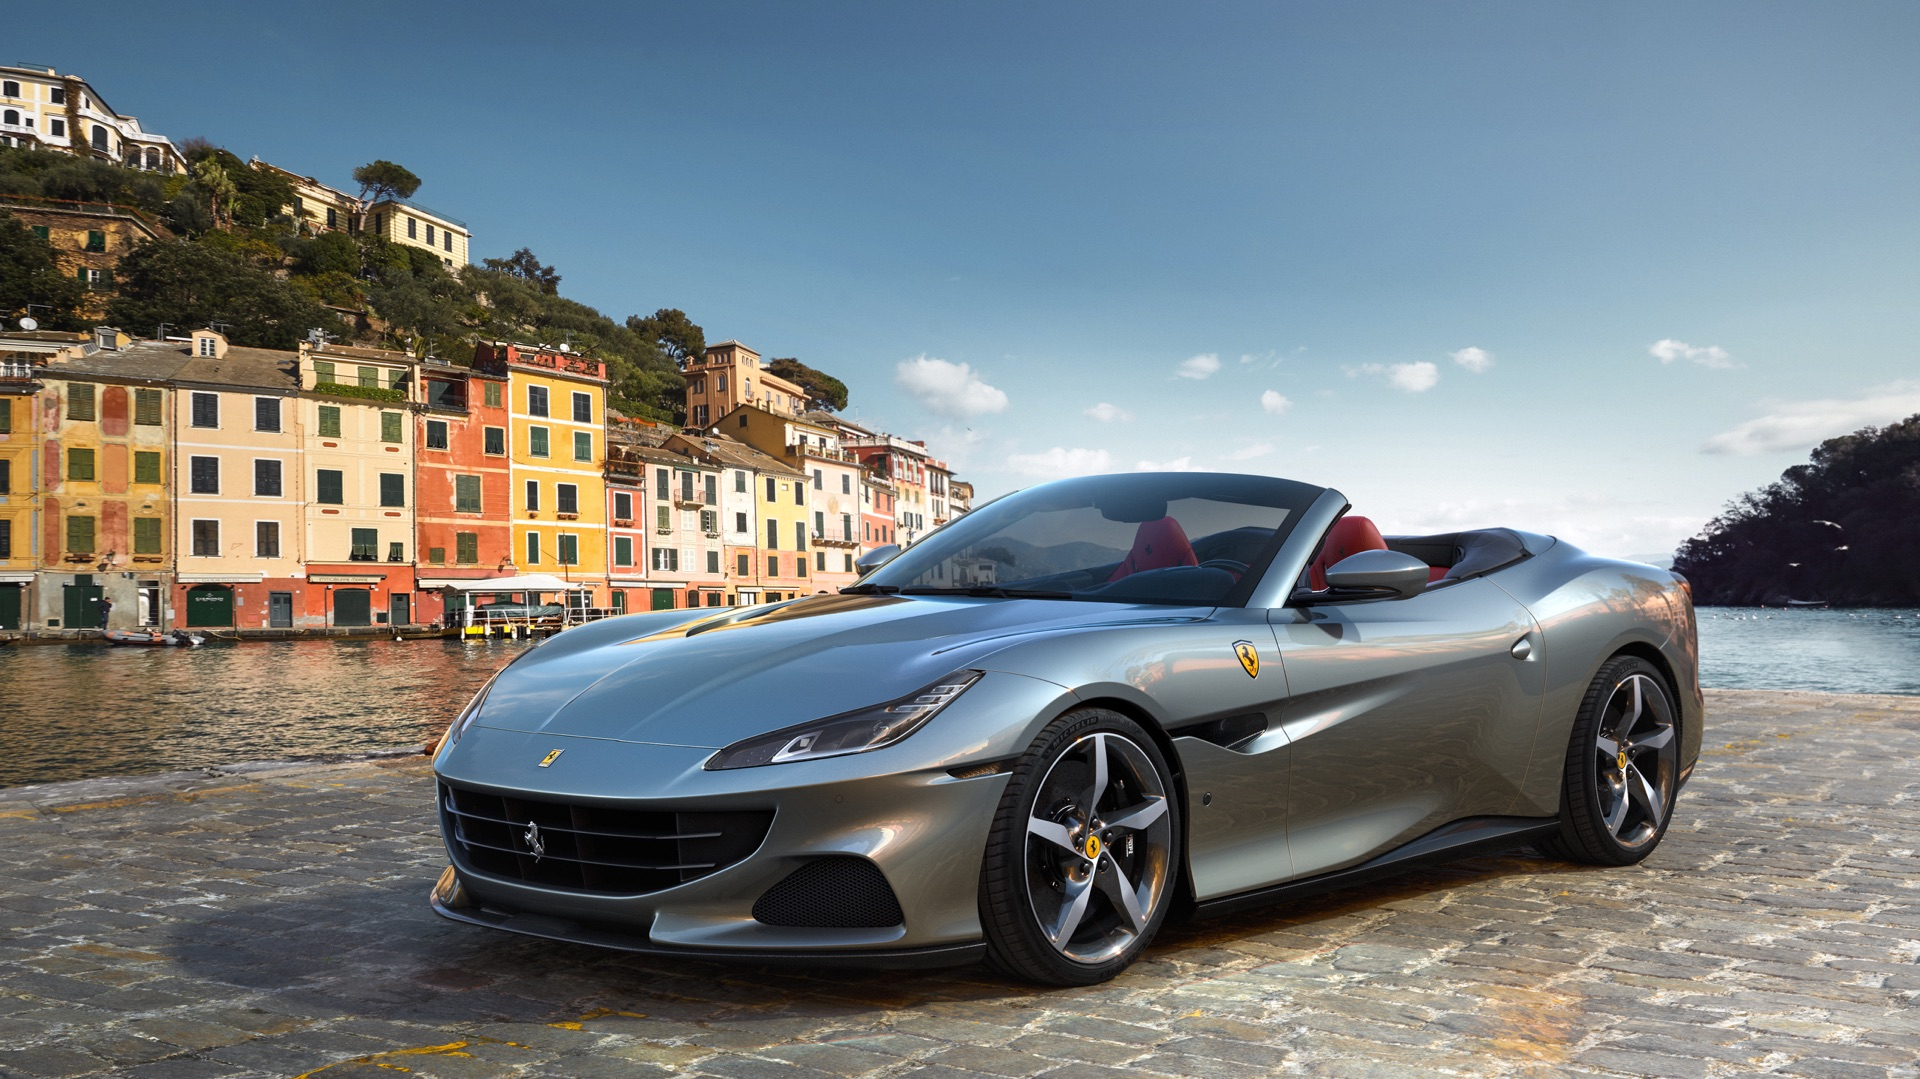 Ferrari Portofino M Brings More Power And Tech To